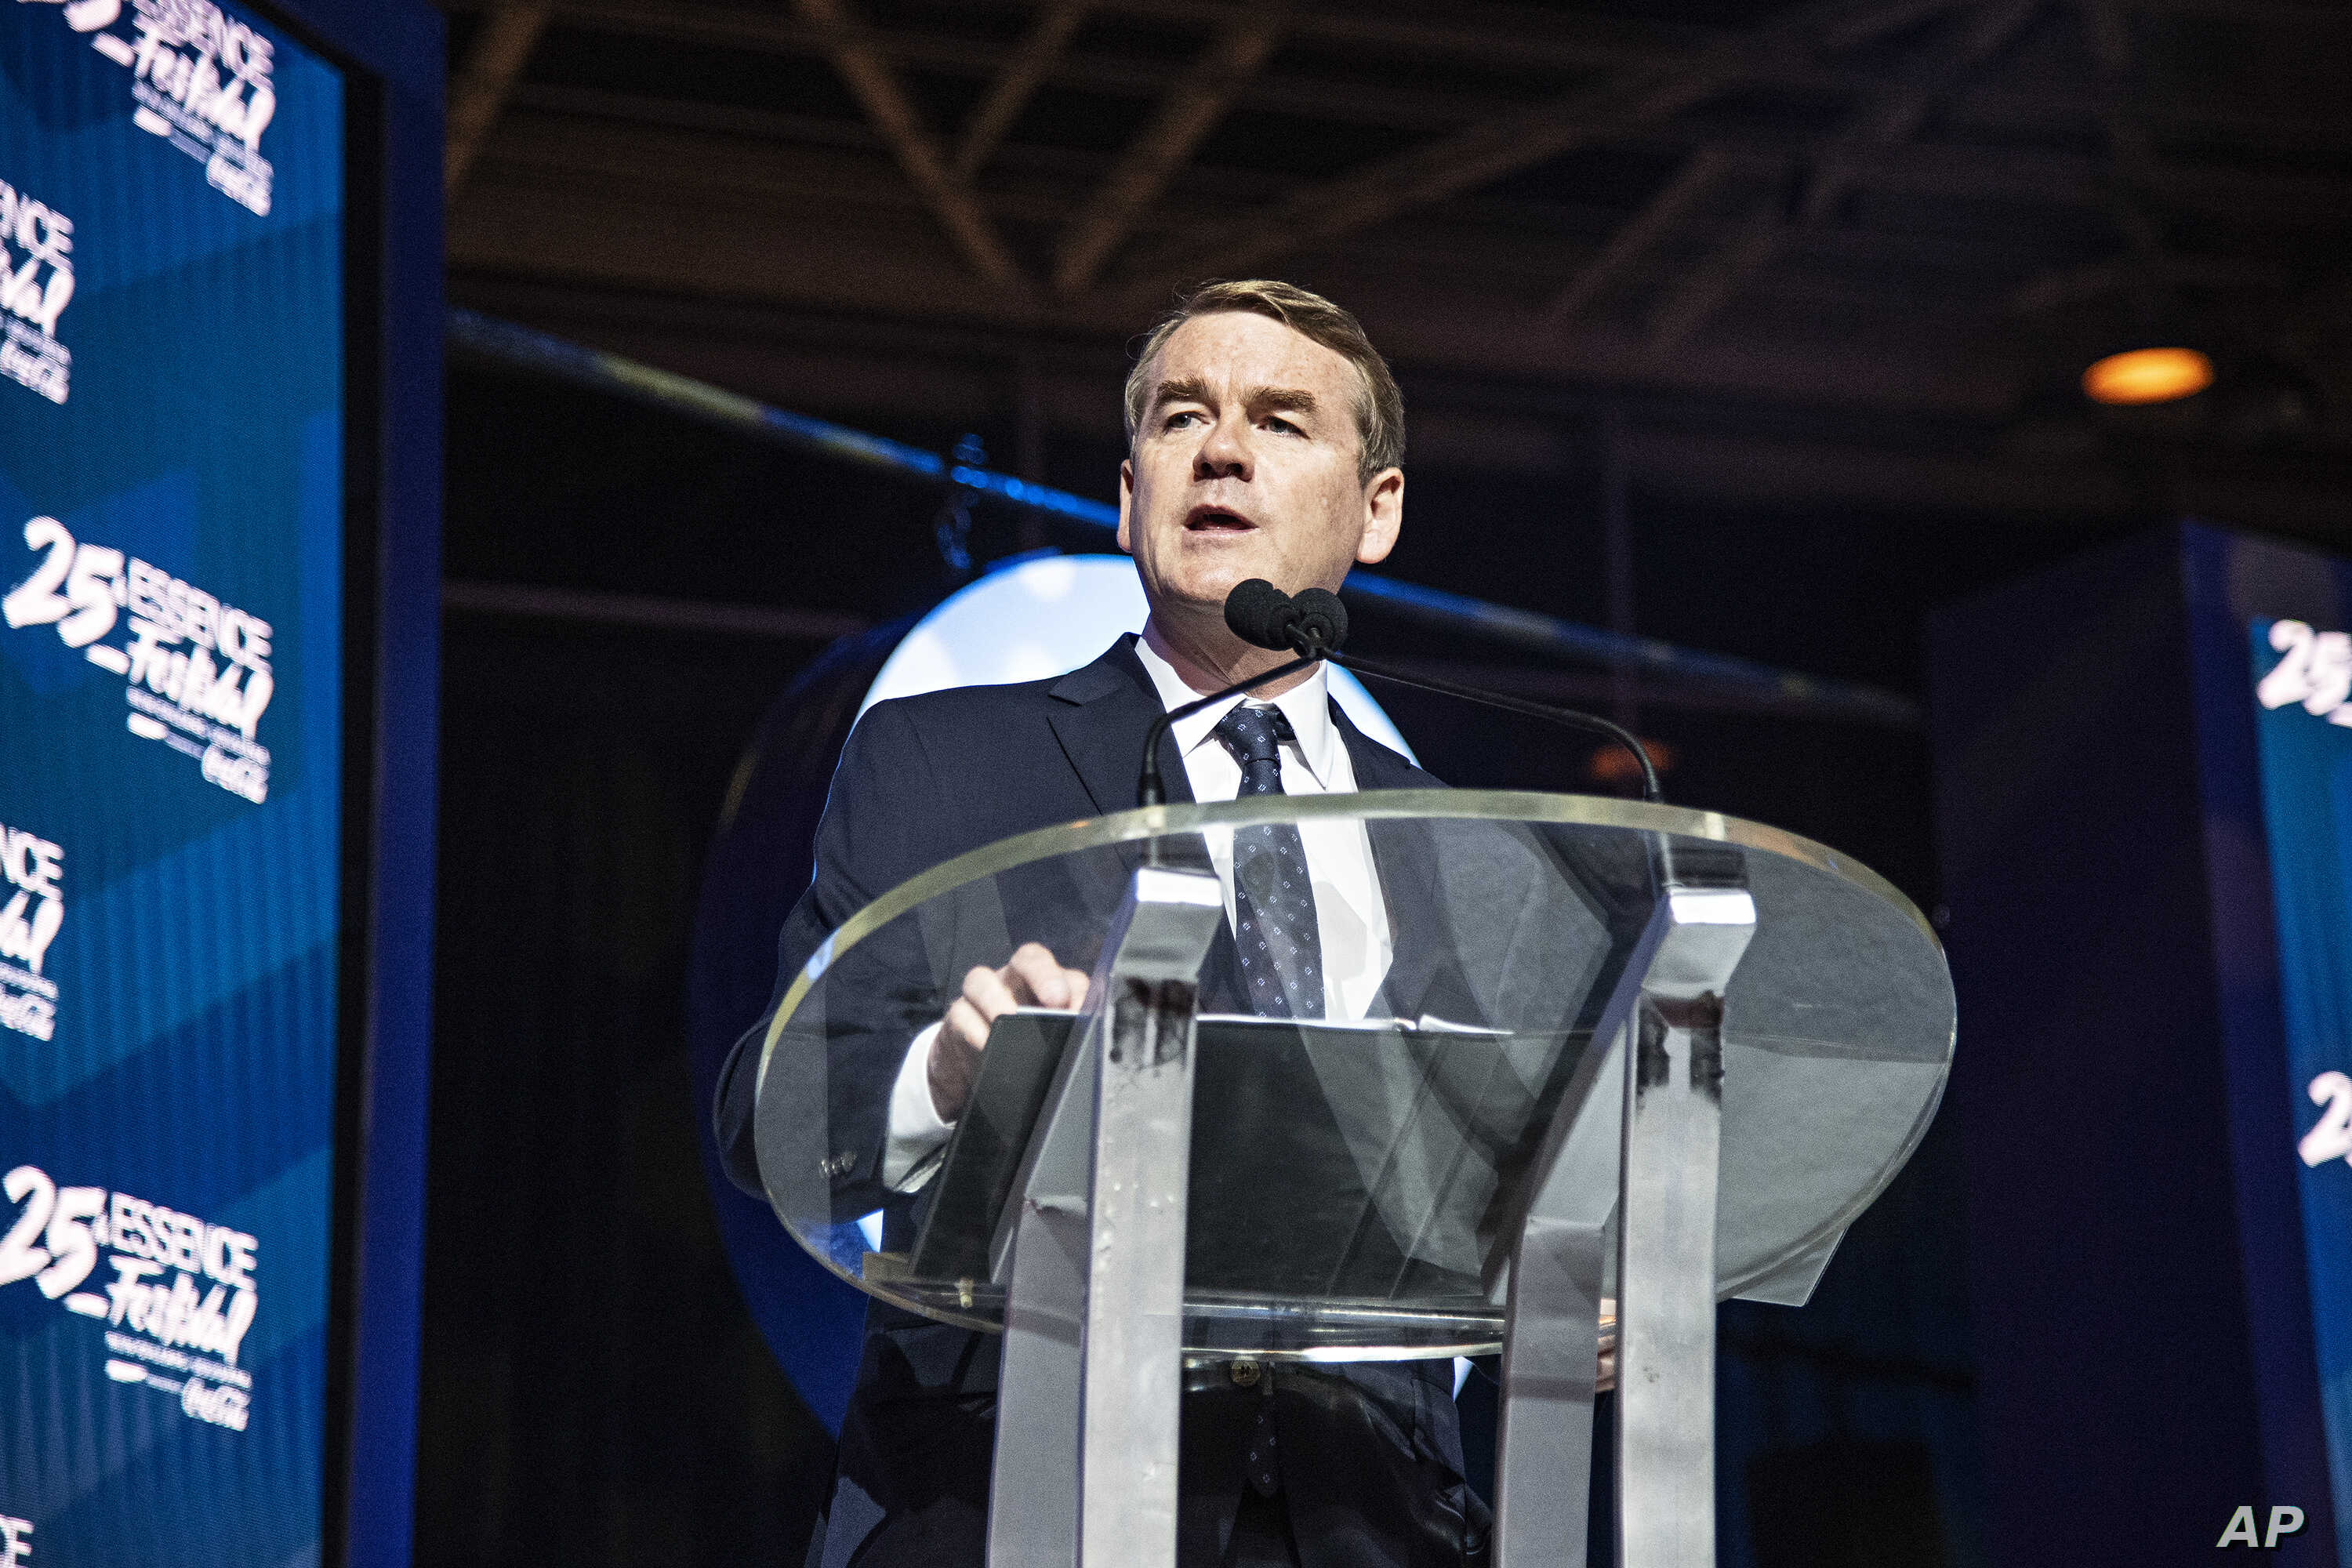 Democratic presidential candidate, Sen. Michael Bennet, D-Colo., speaks at the 2019 Essence Festival at the Ernest N. Morial Convention Center, July 6, 2019, in New Orleans.